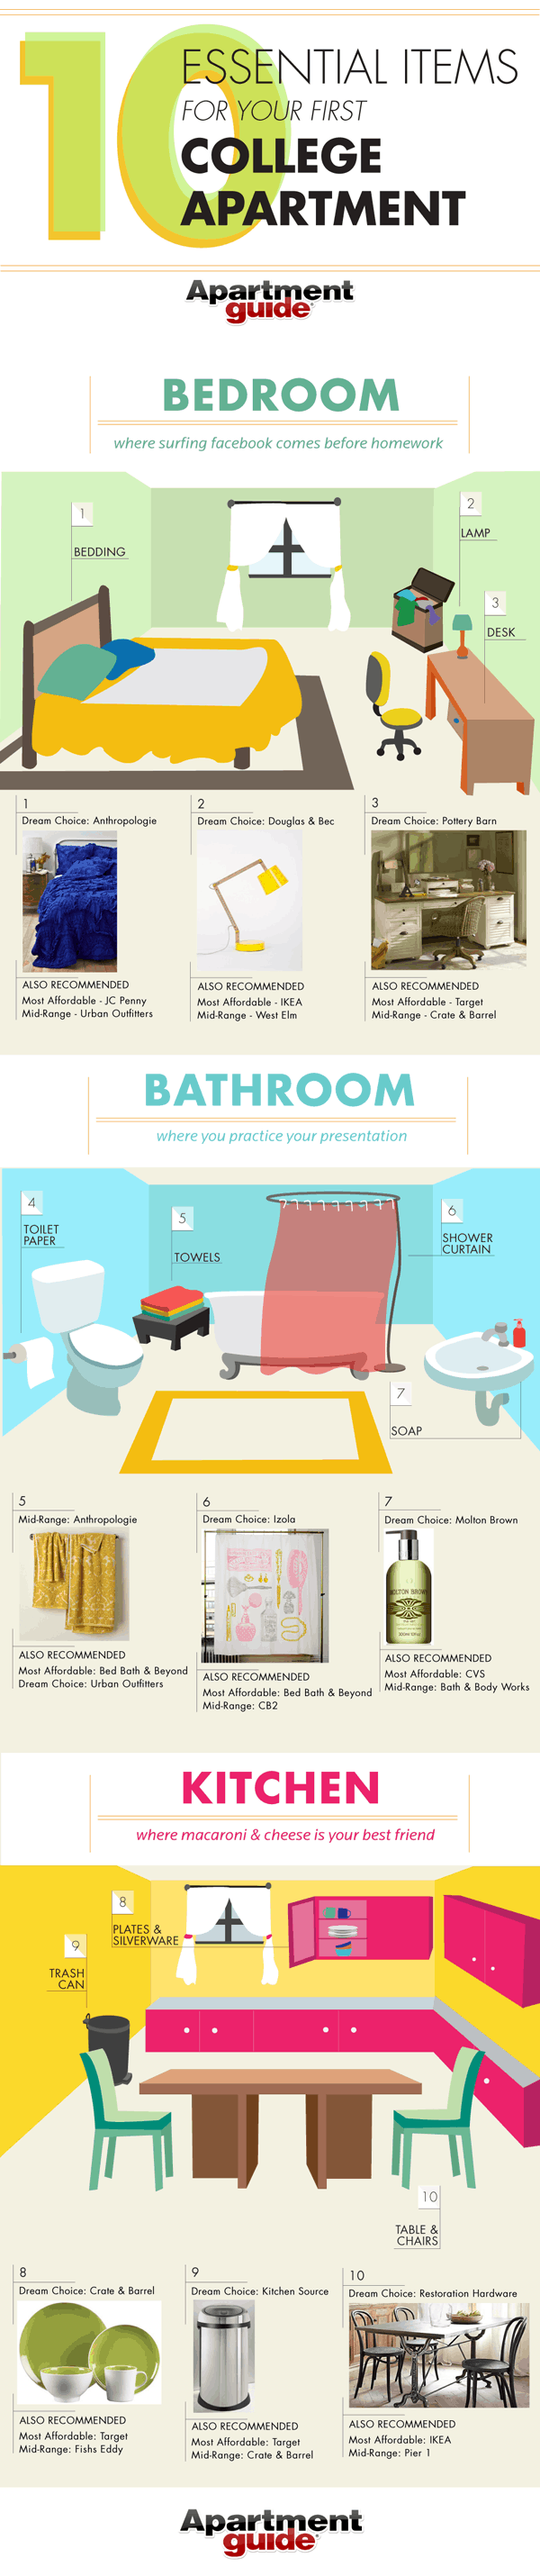 College Apartment Essentials Checklist - Infogrpahic